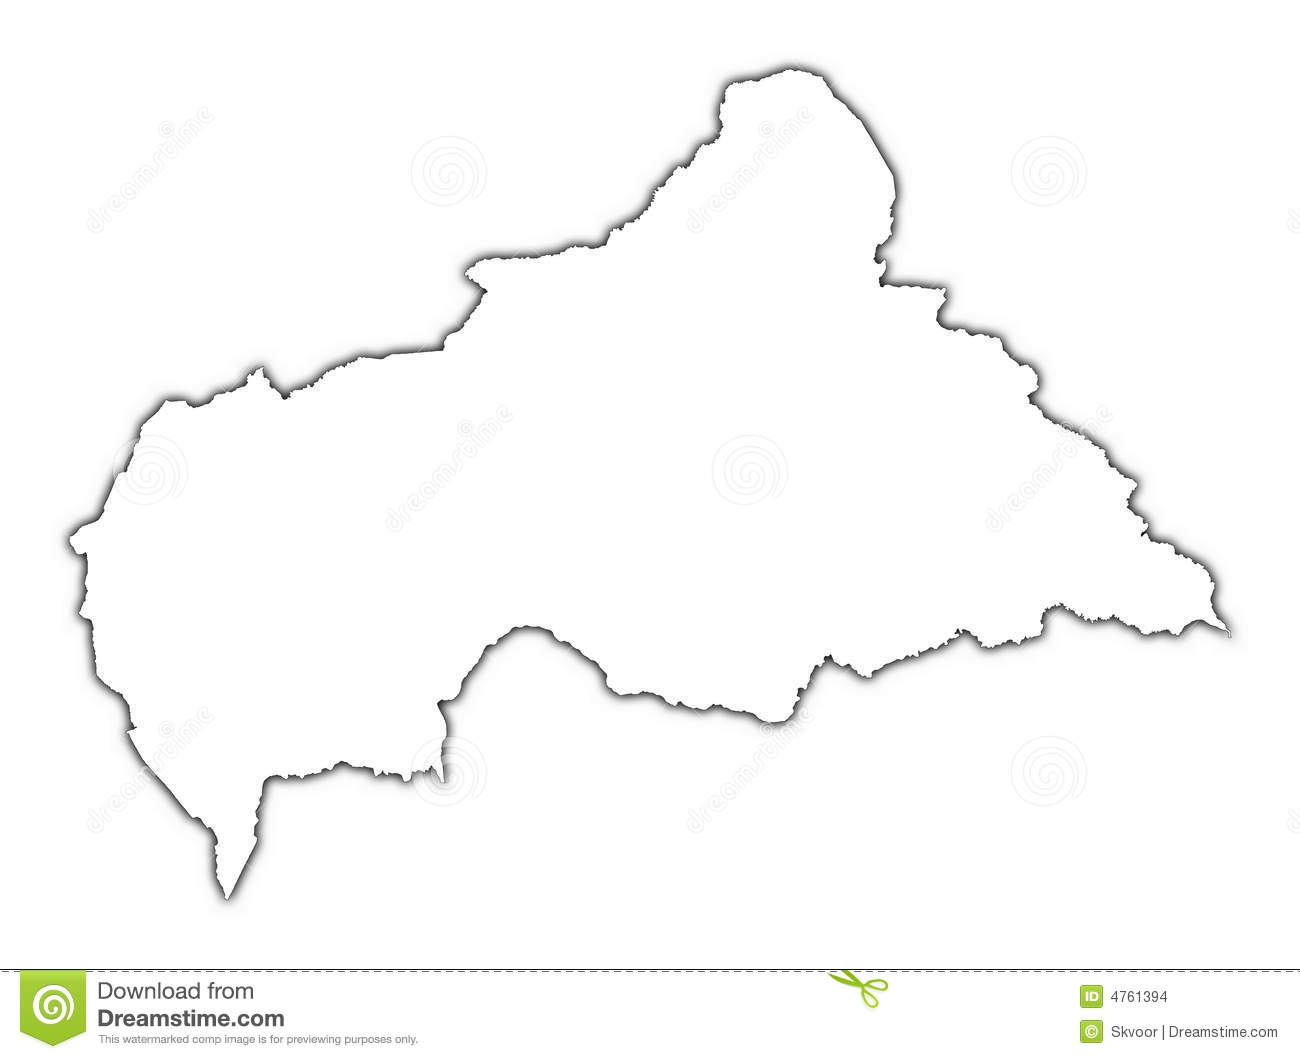 Central african republic black and white clipart.